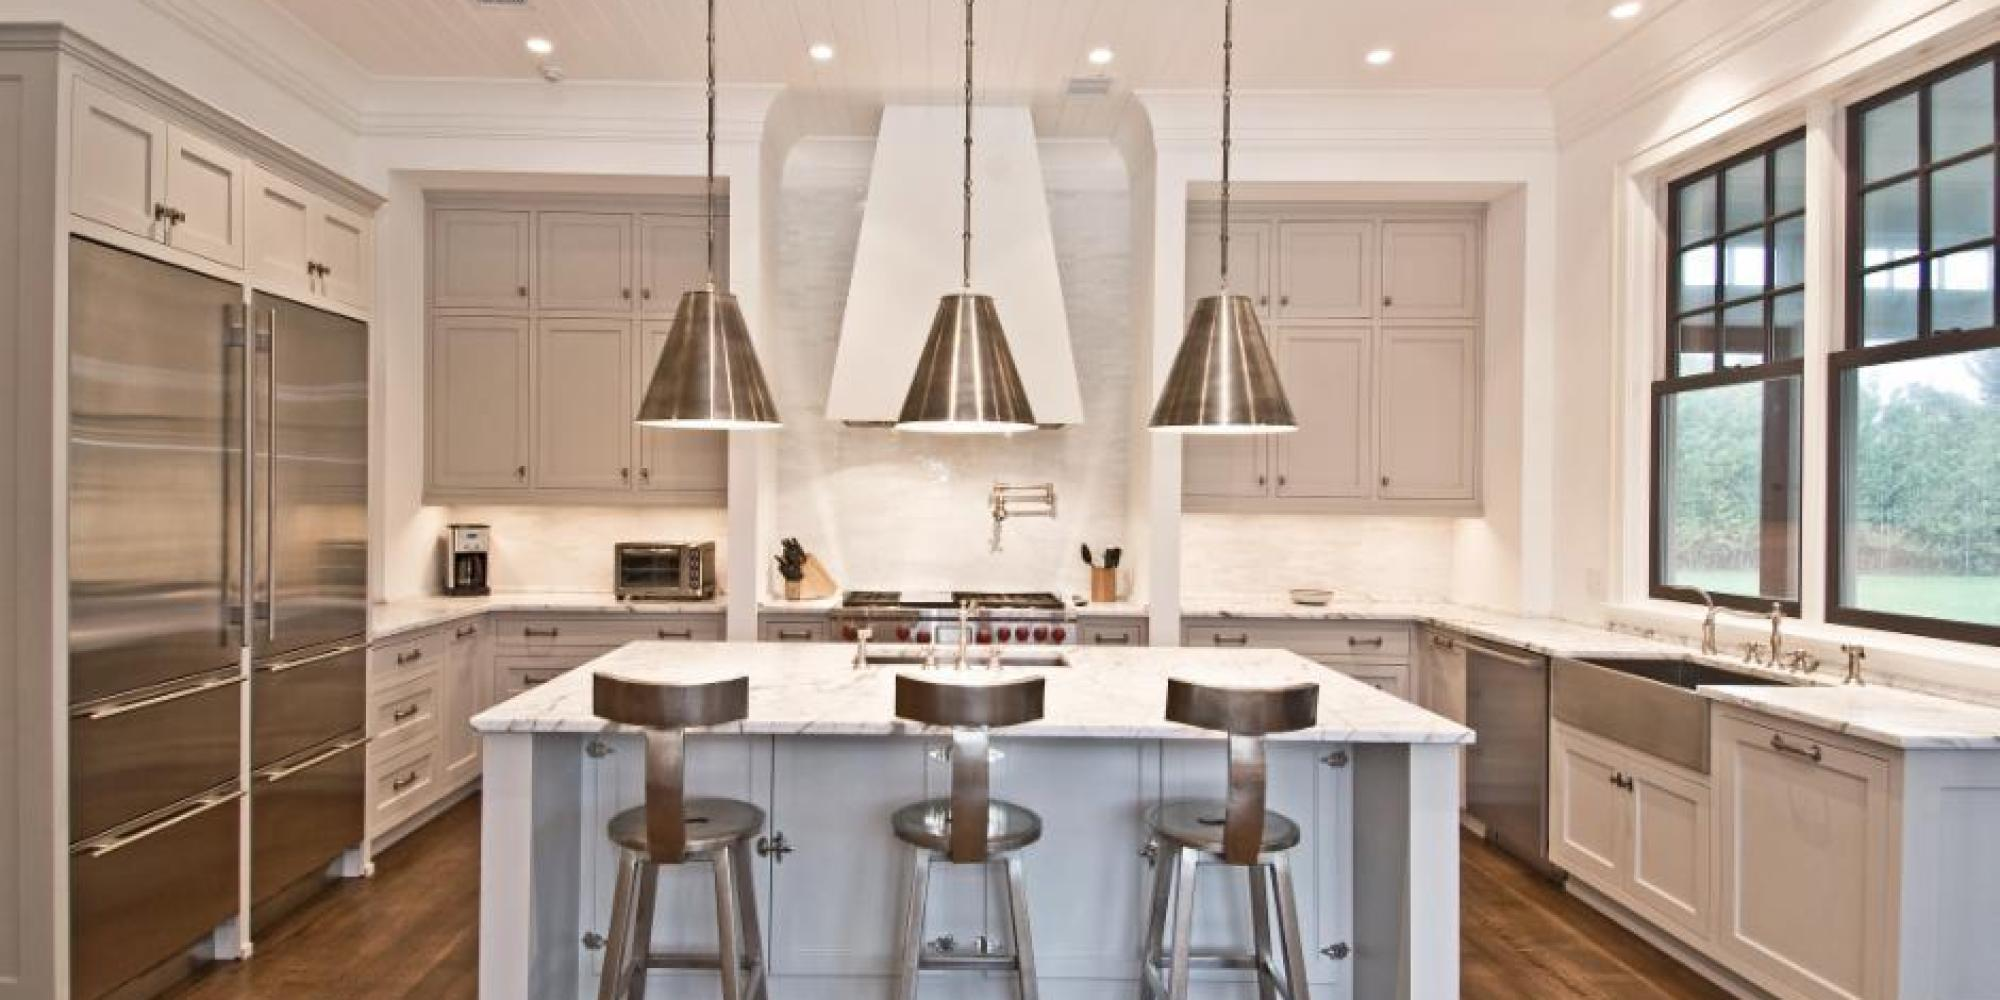 The Best Paint Colors For Every Type Of Kitchen HuffPost - What kind of paint for kitchen cabinets